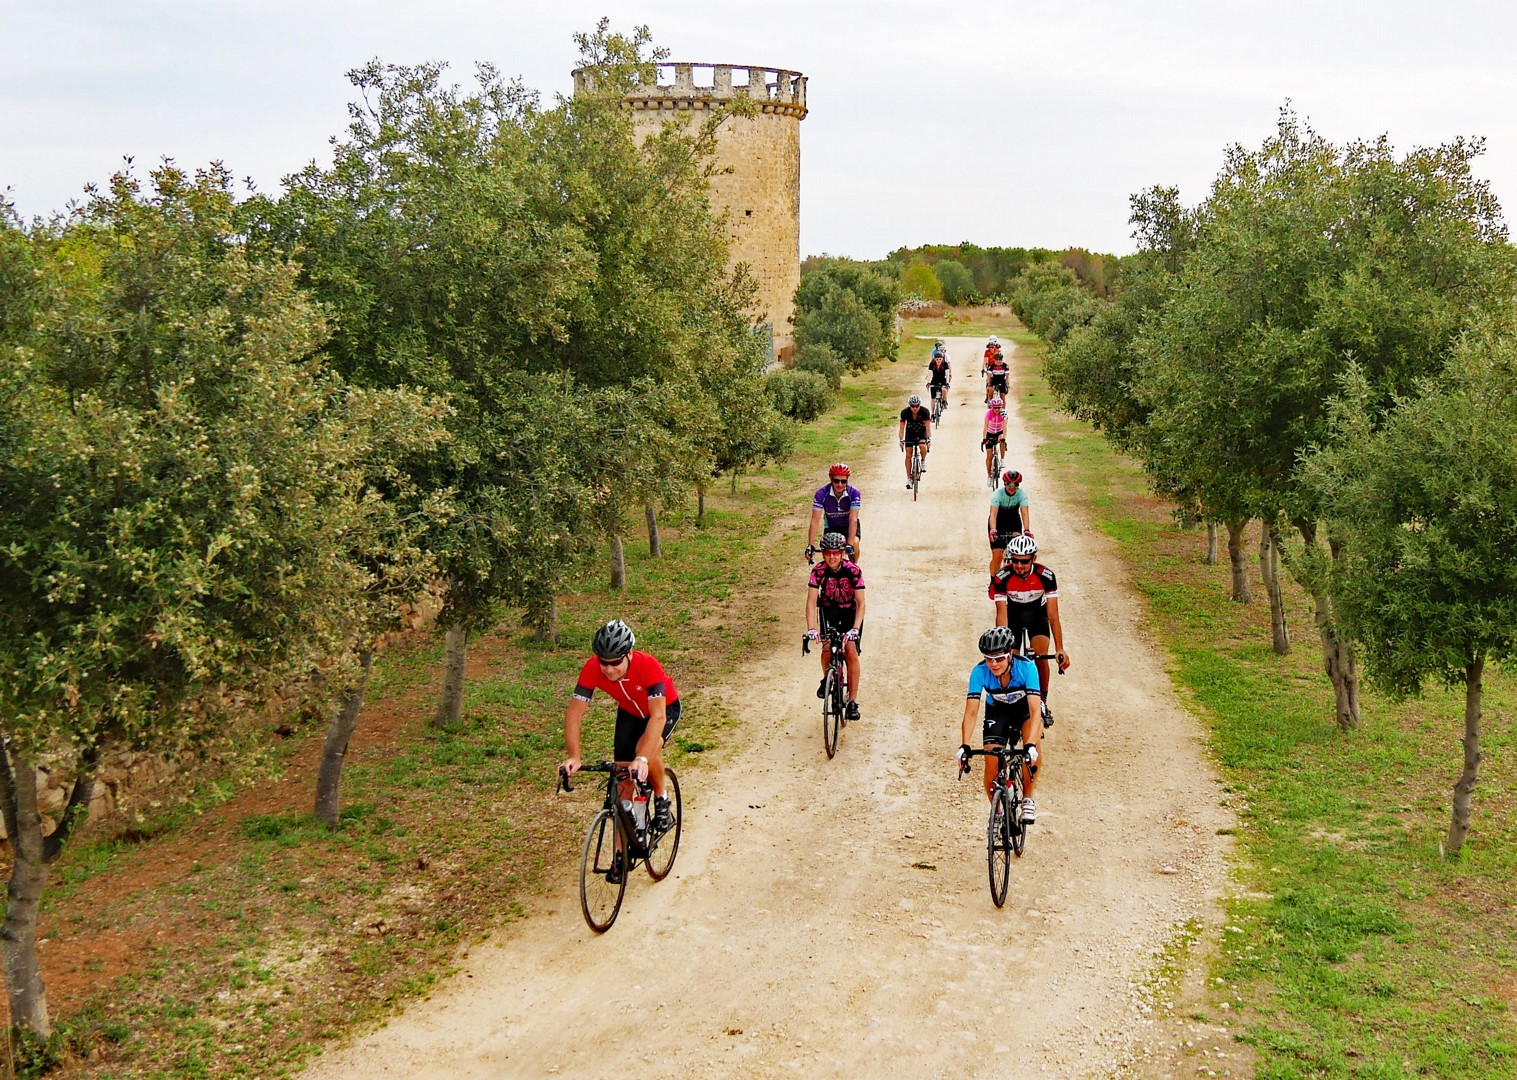 guided-road-cycling-adventure-through-olive-groves.jpg - Italy - Grand Traverse - South to North (22 days) - Guided Road Cycling Holiday - Italia Road Cycling